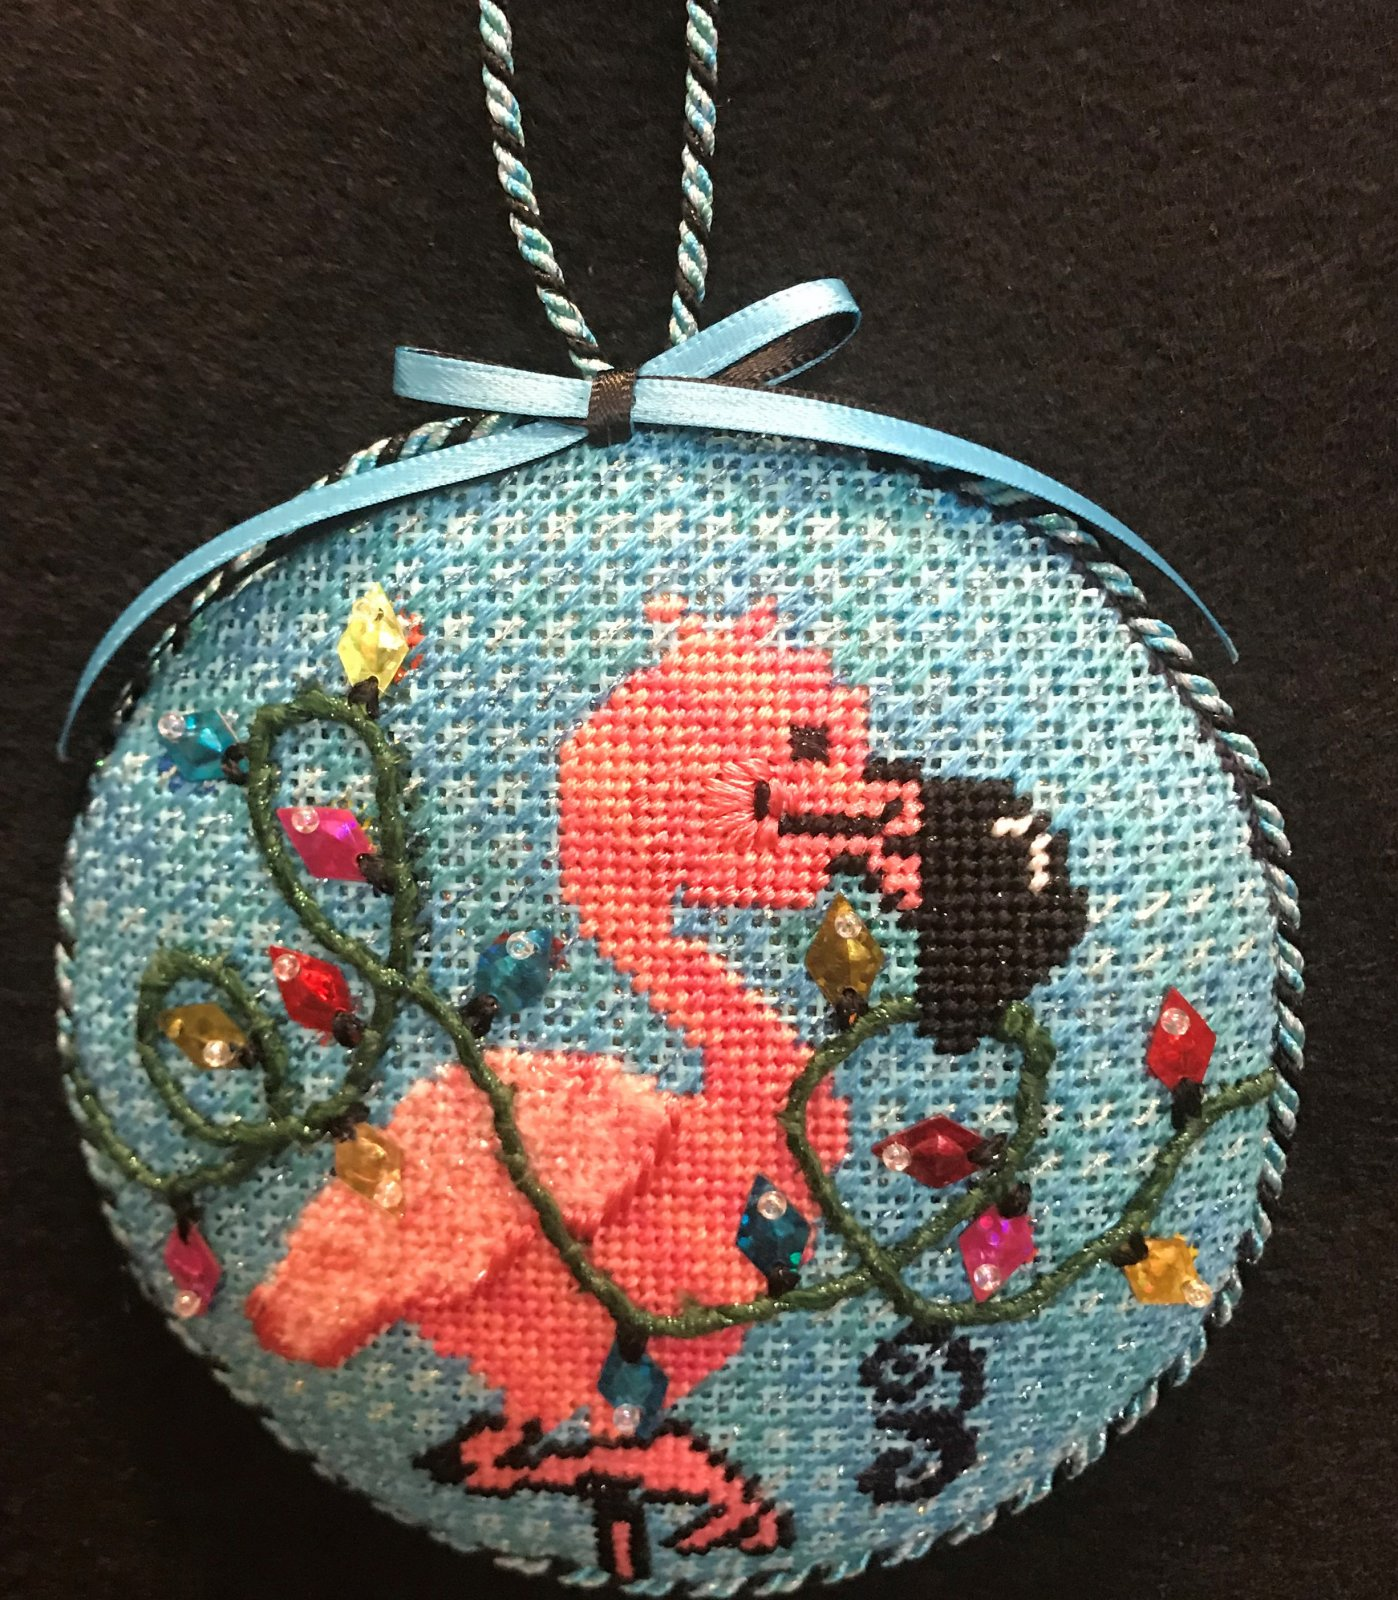 #3 Flamingo Ornament - stitched by Stacey G.